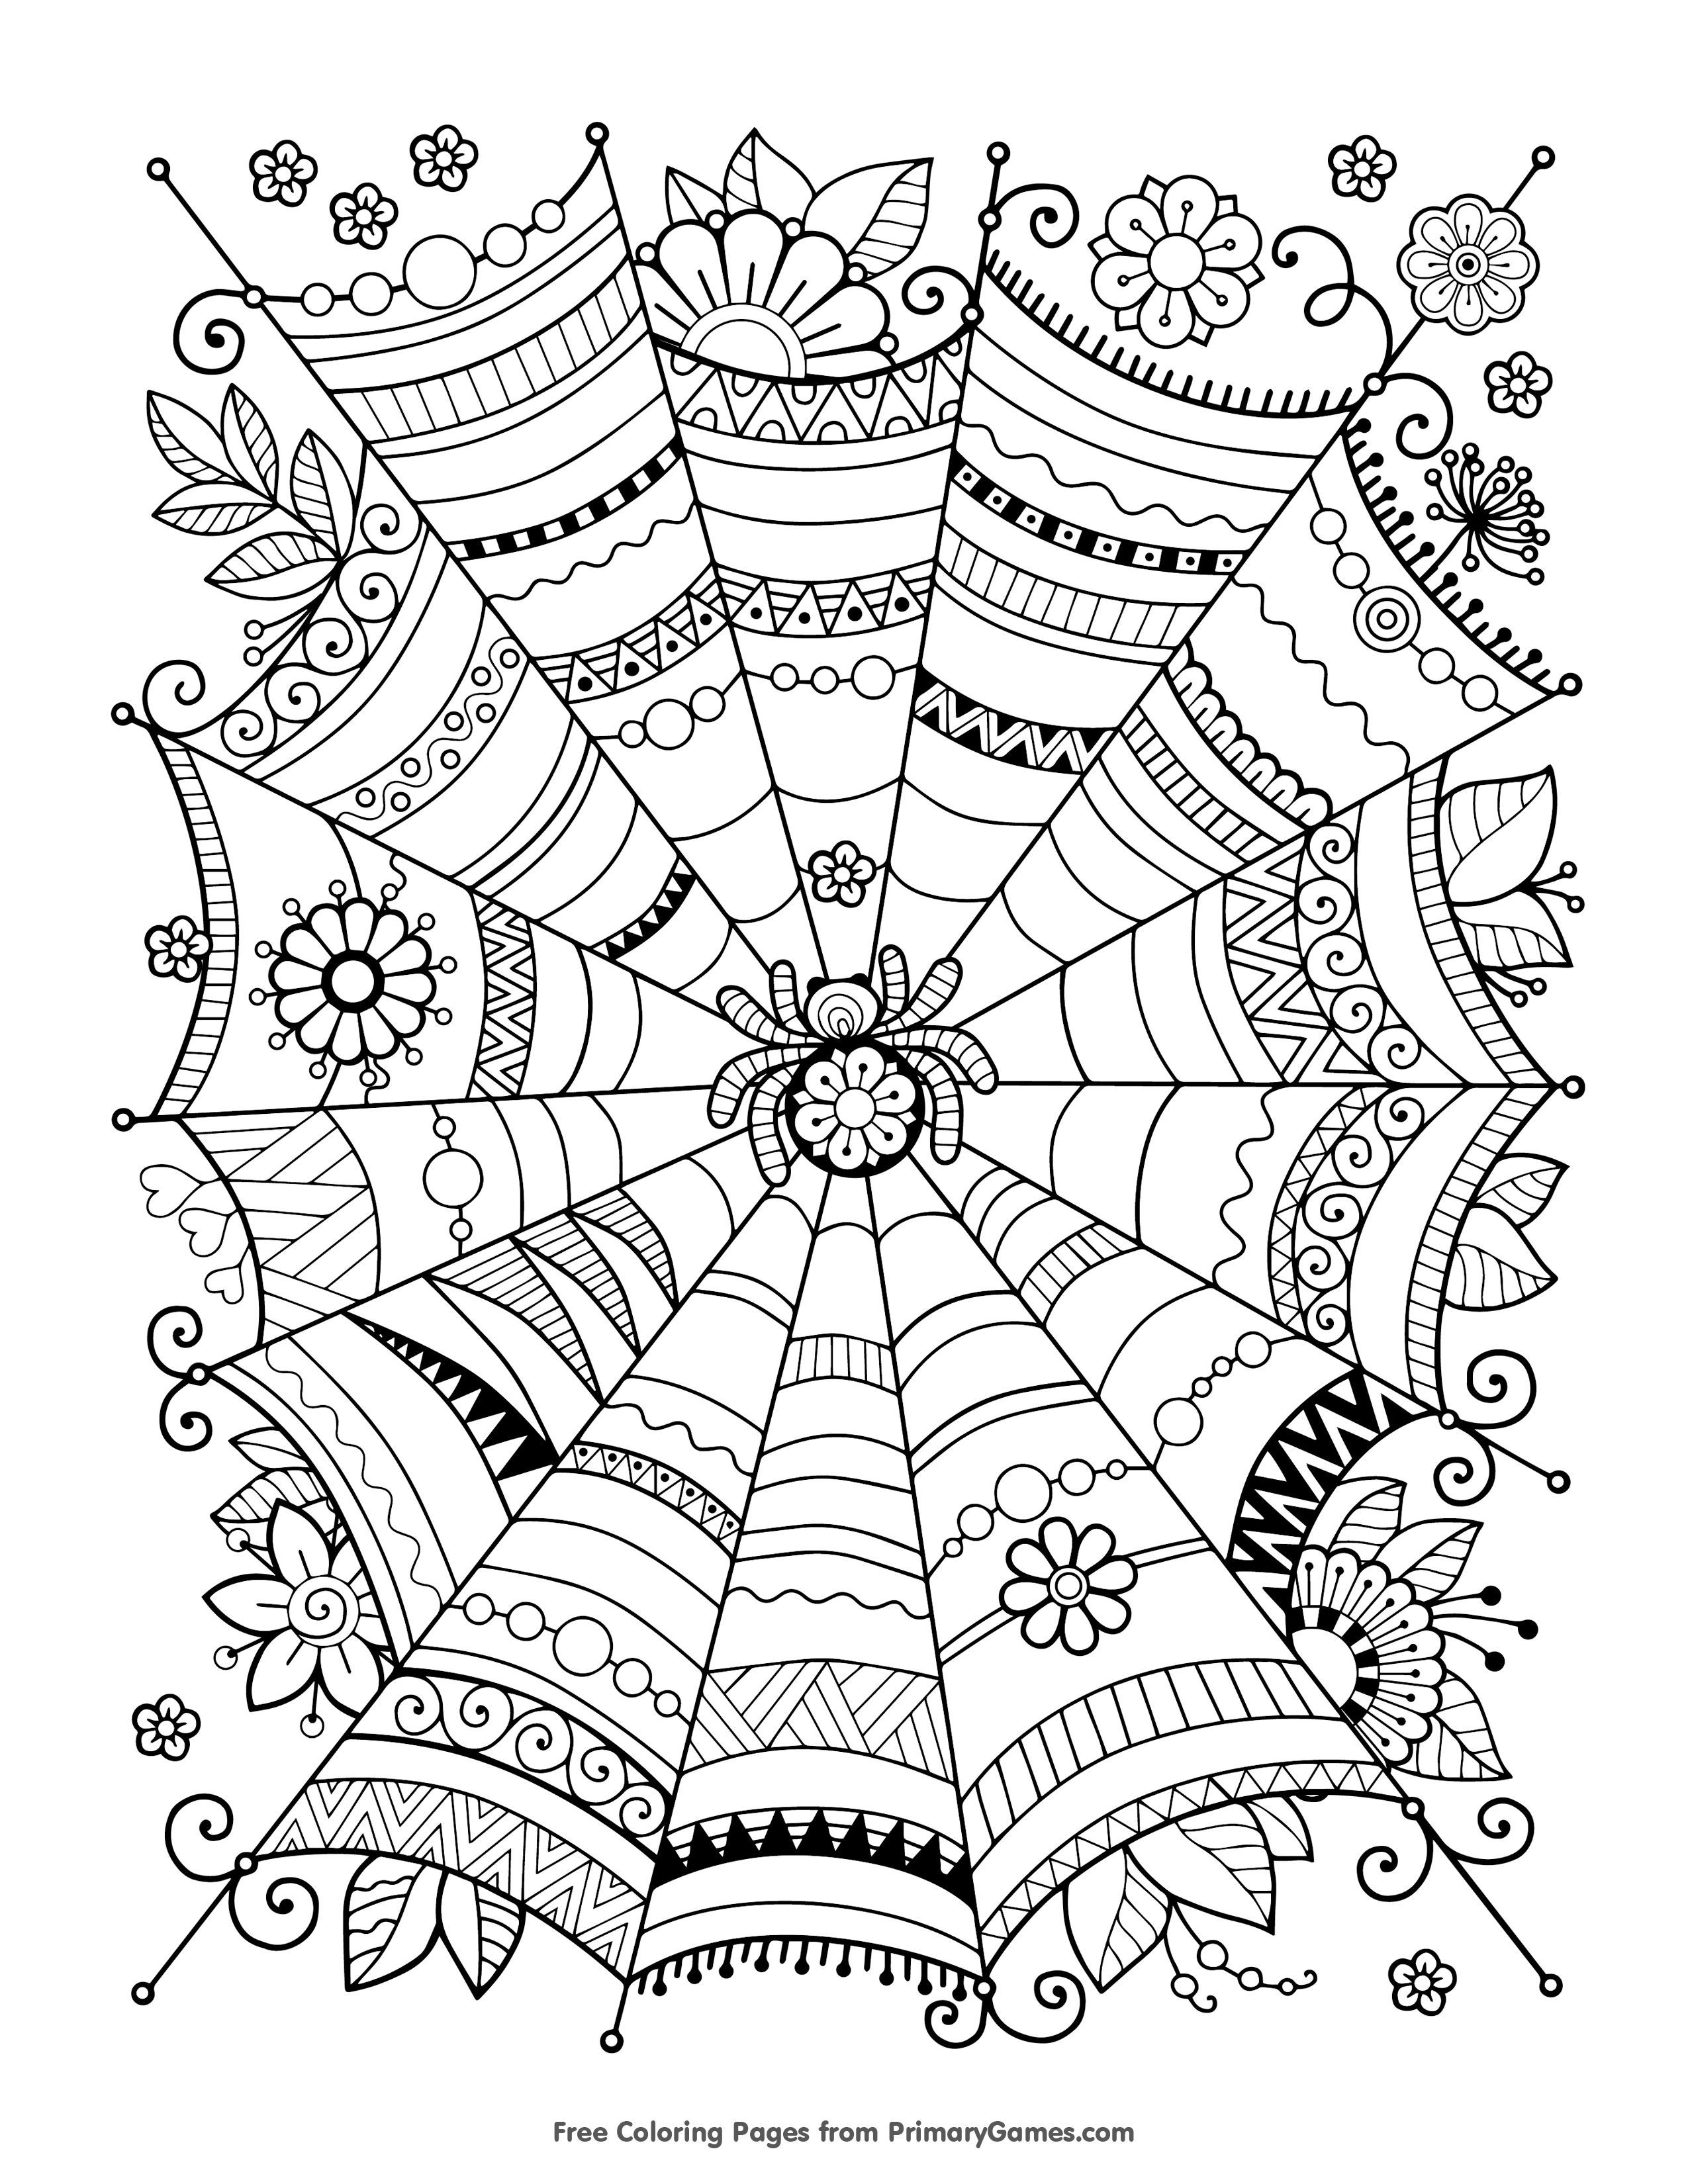 Free Halloween Coloring Pages For Adults Kids In 2020 Free Halloween Coloring Pages Halloween Coloring Pages Printable Halloween Coloring Book